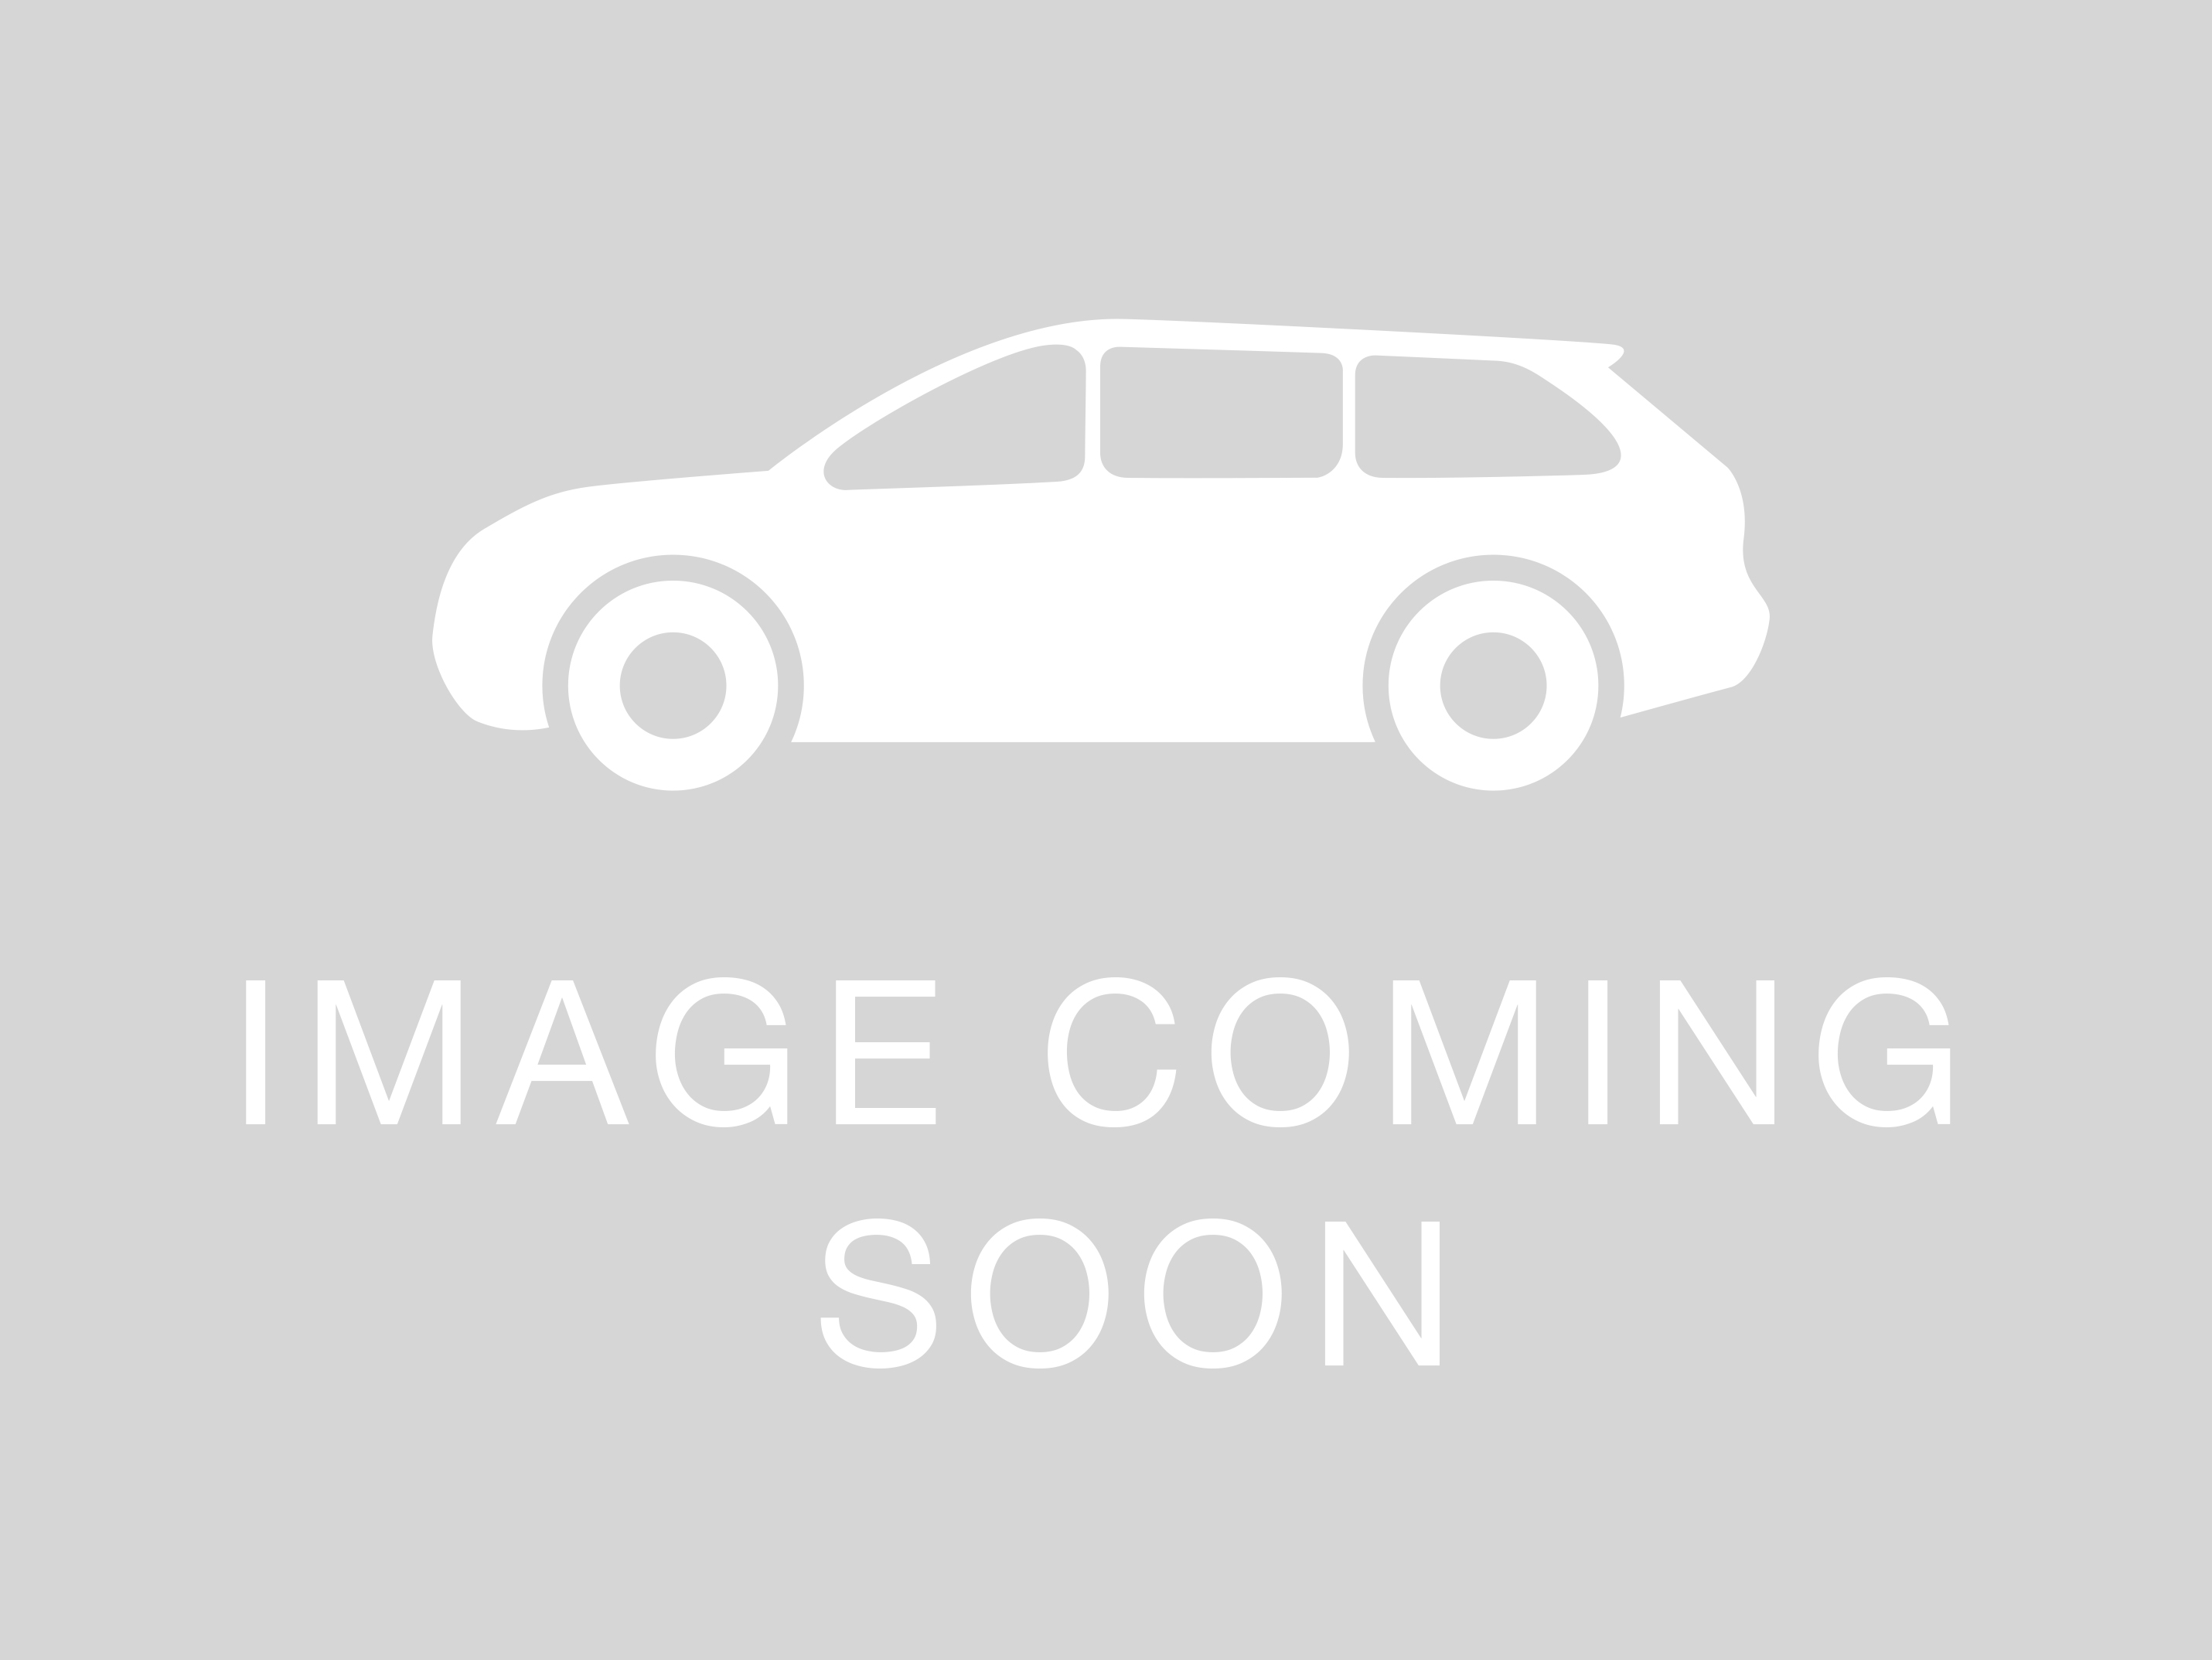 Vehicles Chevrolet Gmc Specialists 1976 Crew Cab 1975 Cadillac Fleetwood Brougham